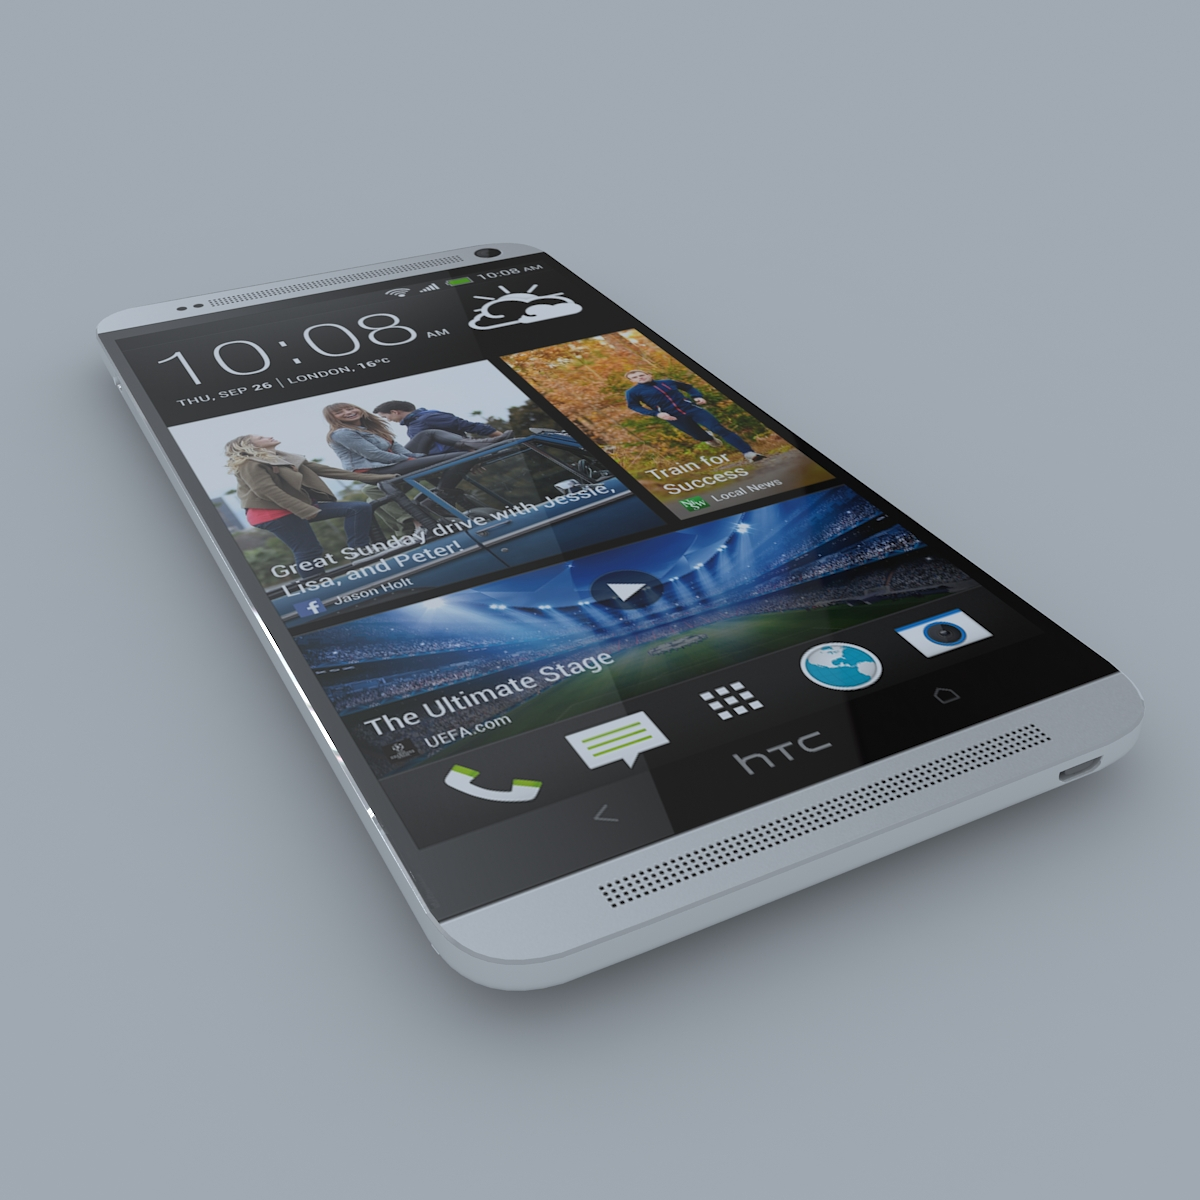 htc one max 3d model max c4d ma mb obj 158165